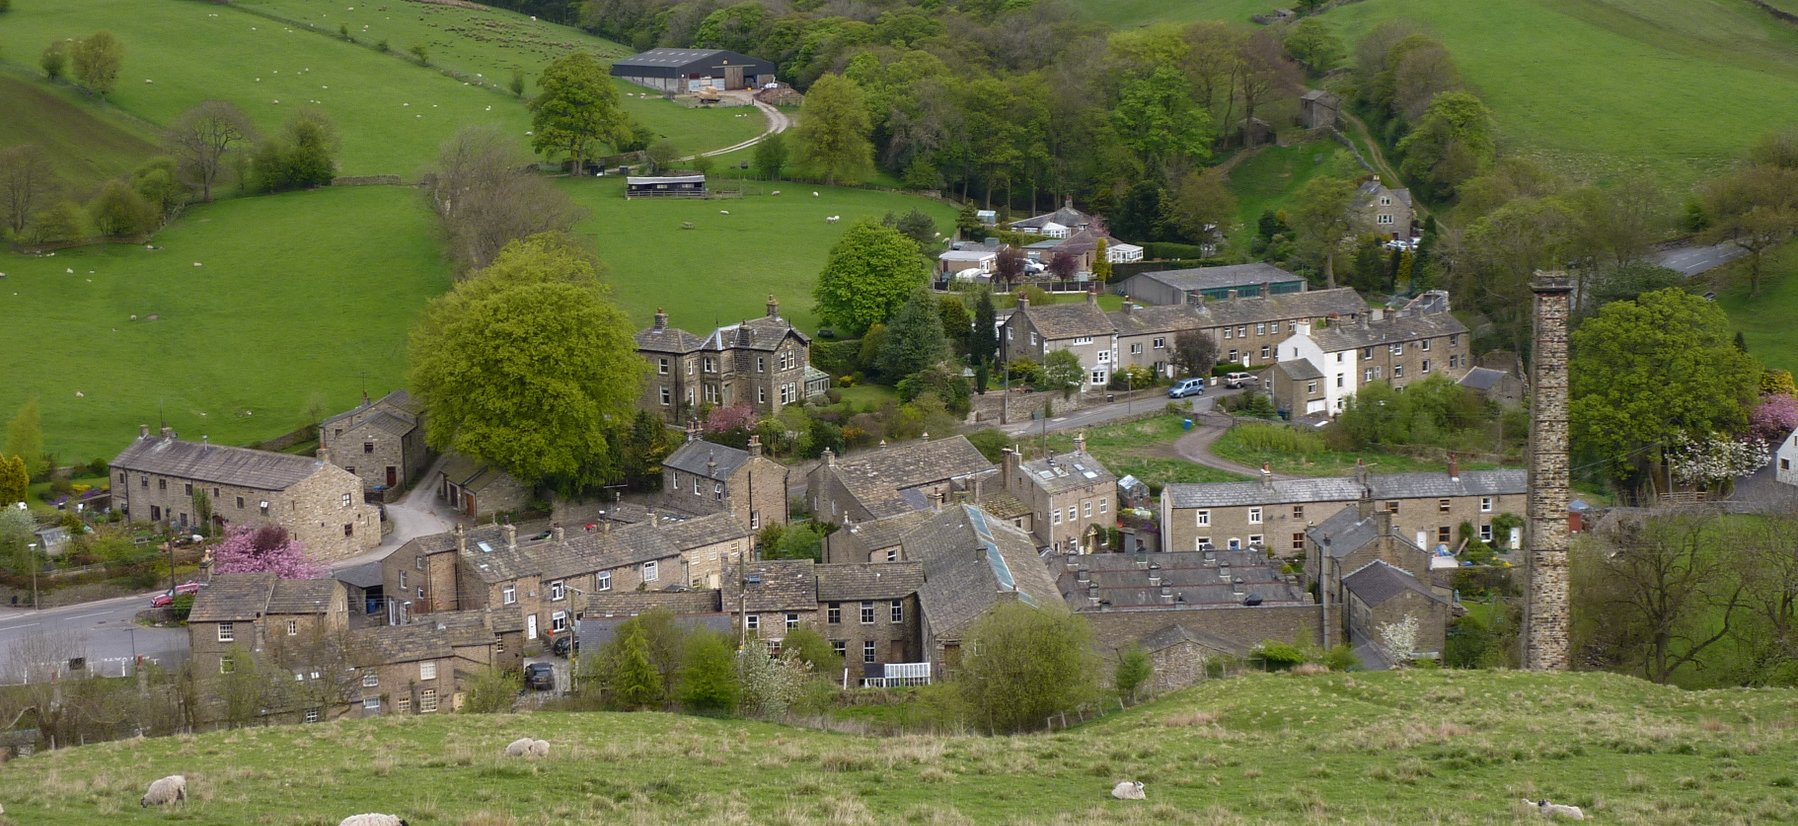 Dropping into Lothersdale with its tall chimney